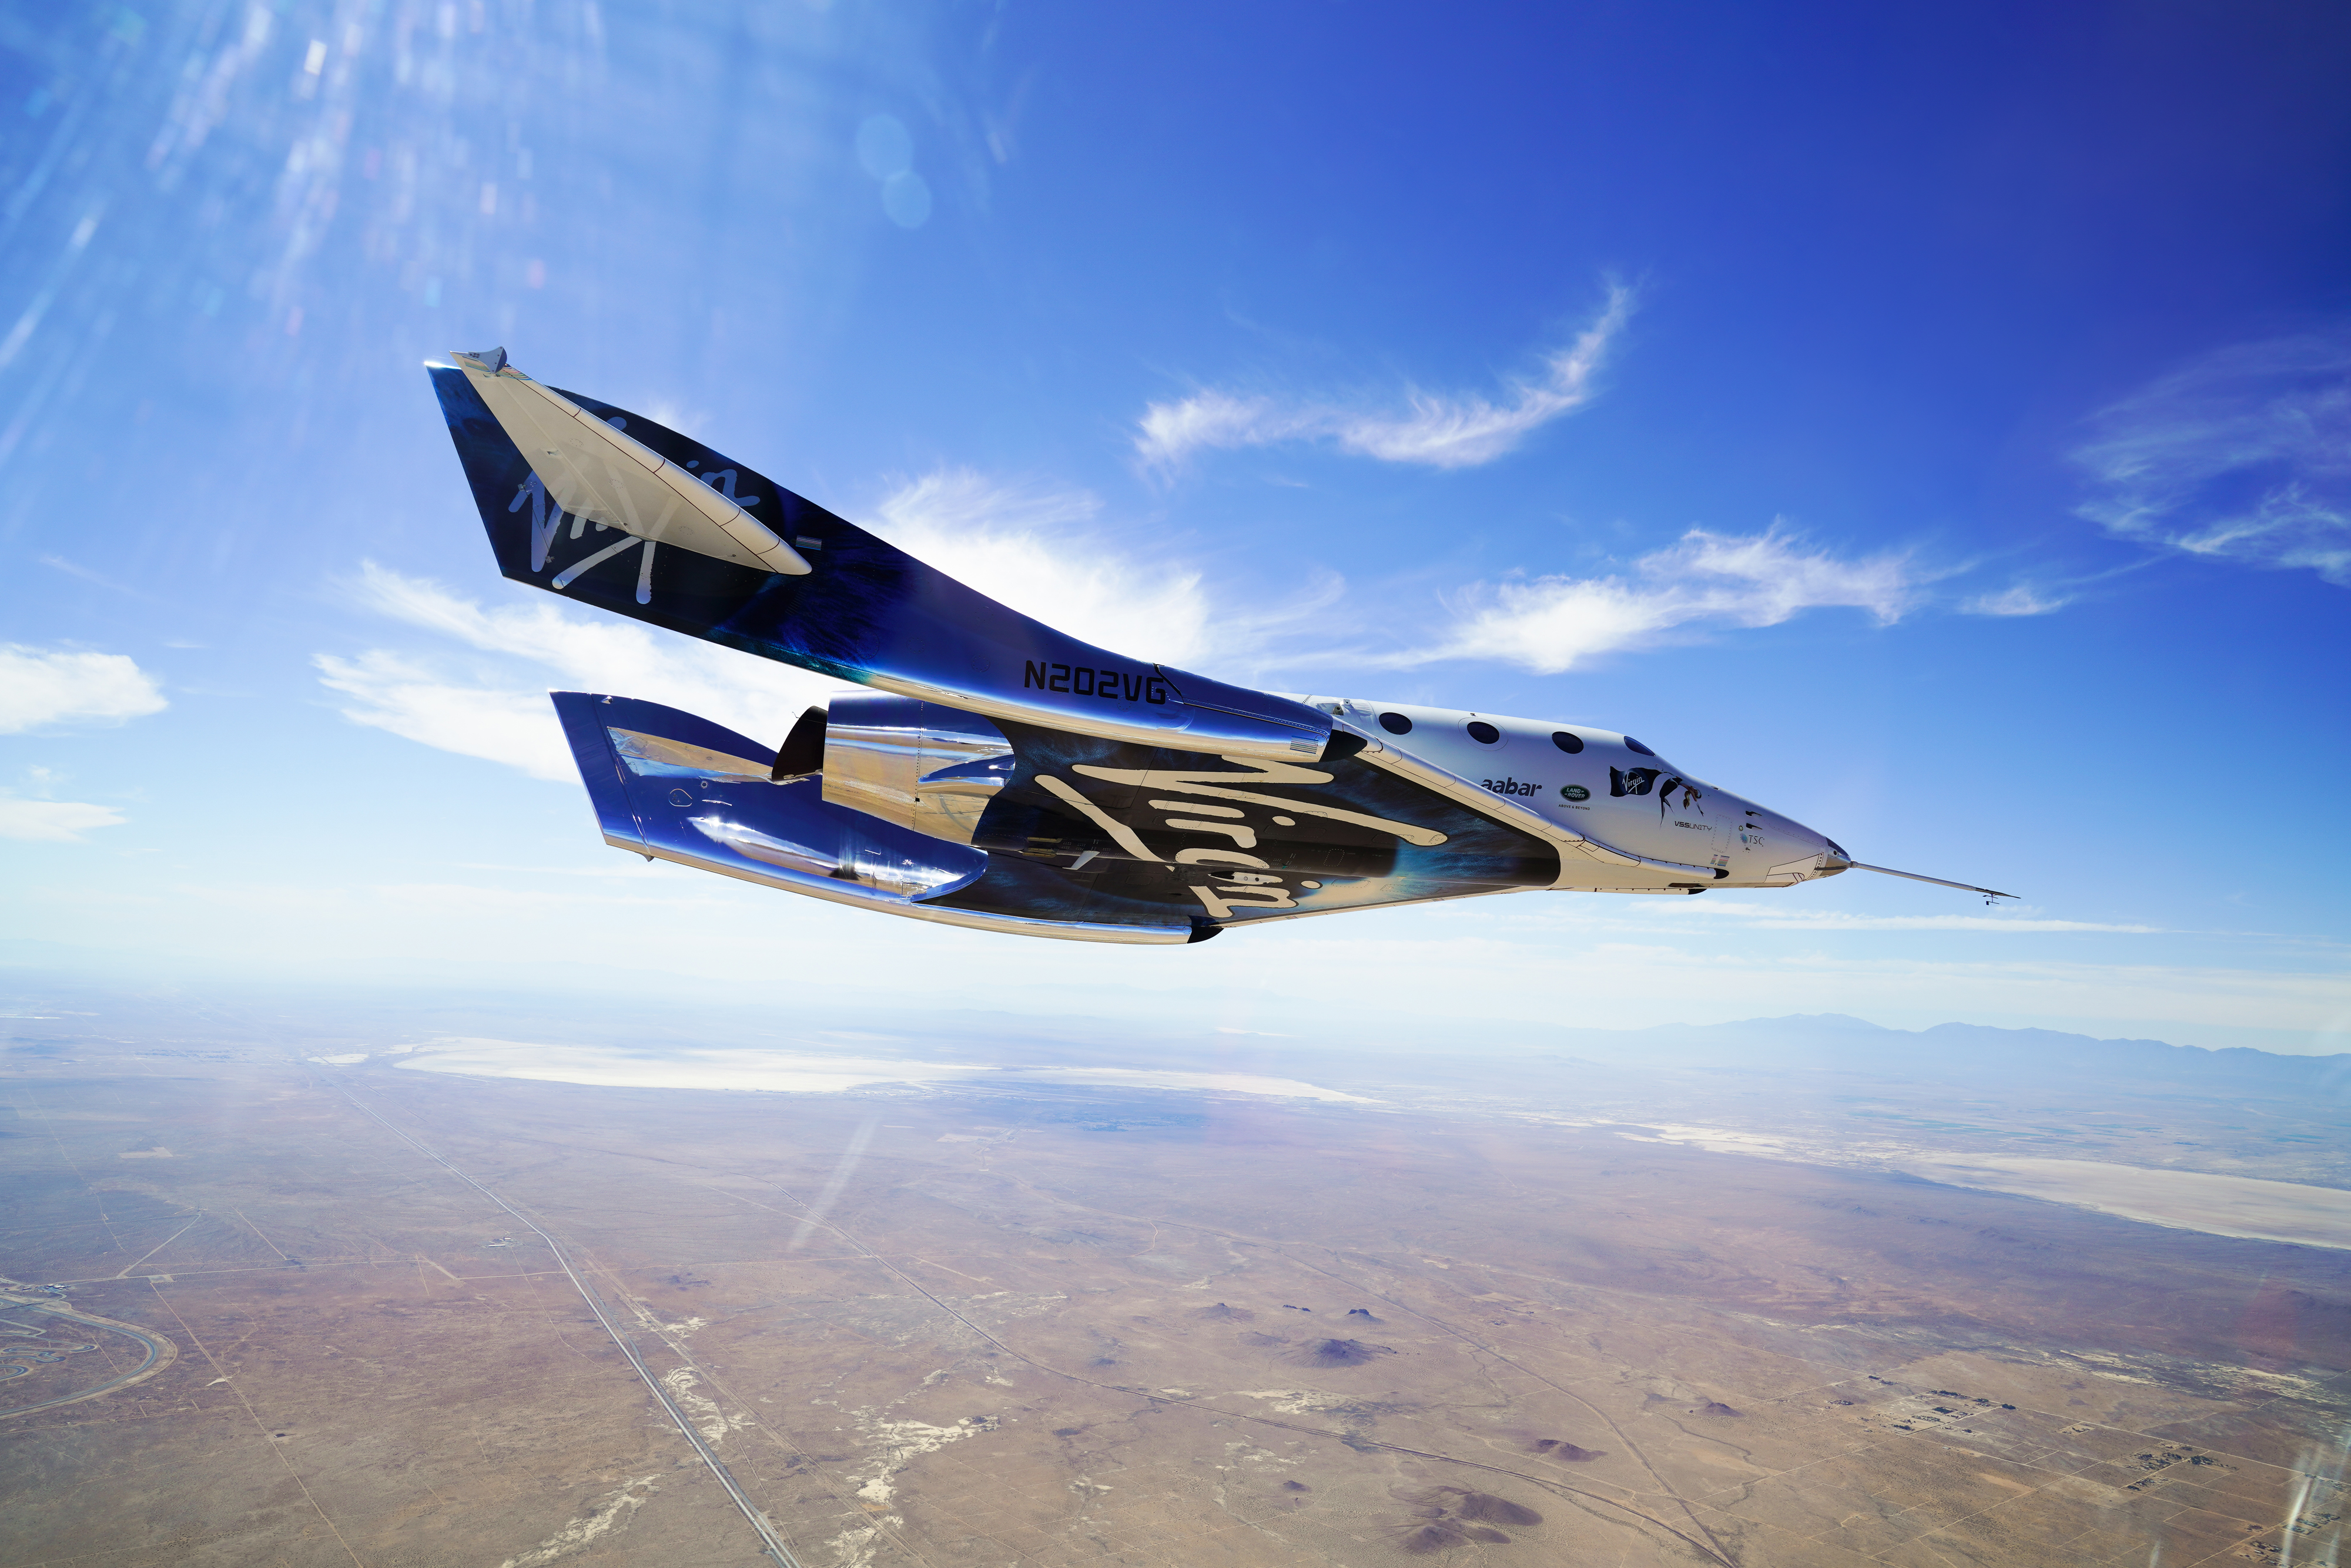 Virgin Galactic to launch science communicator and researcher to space